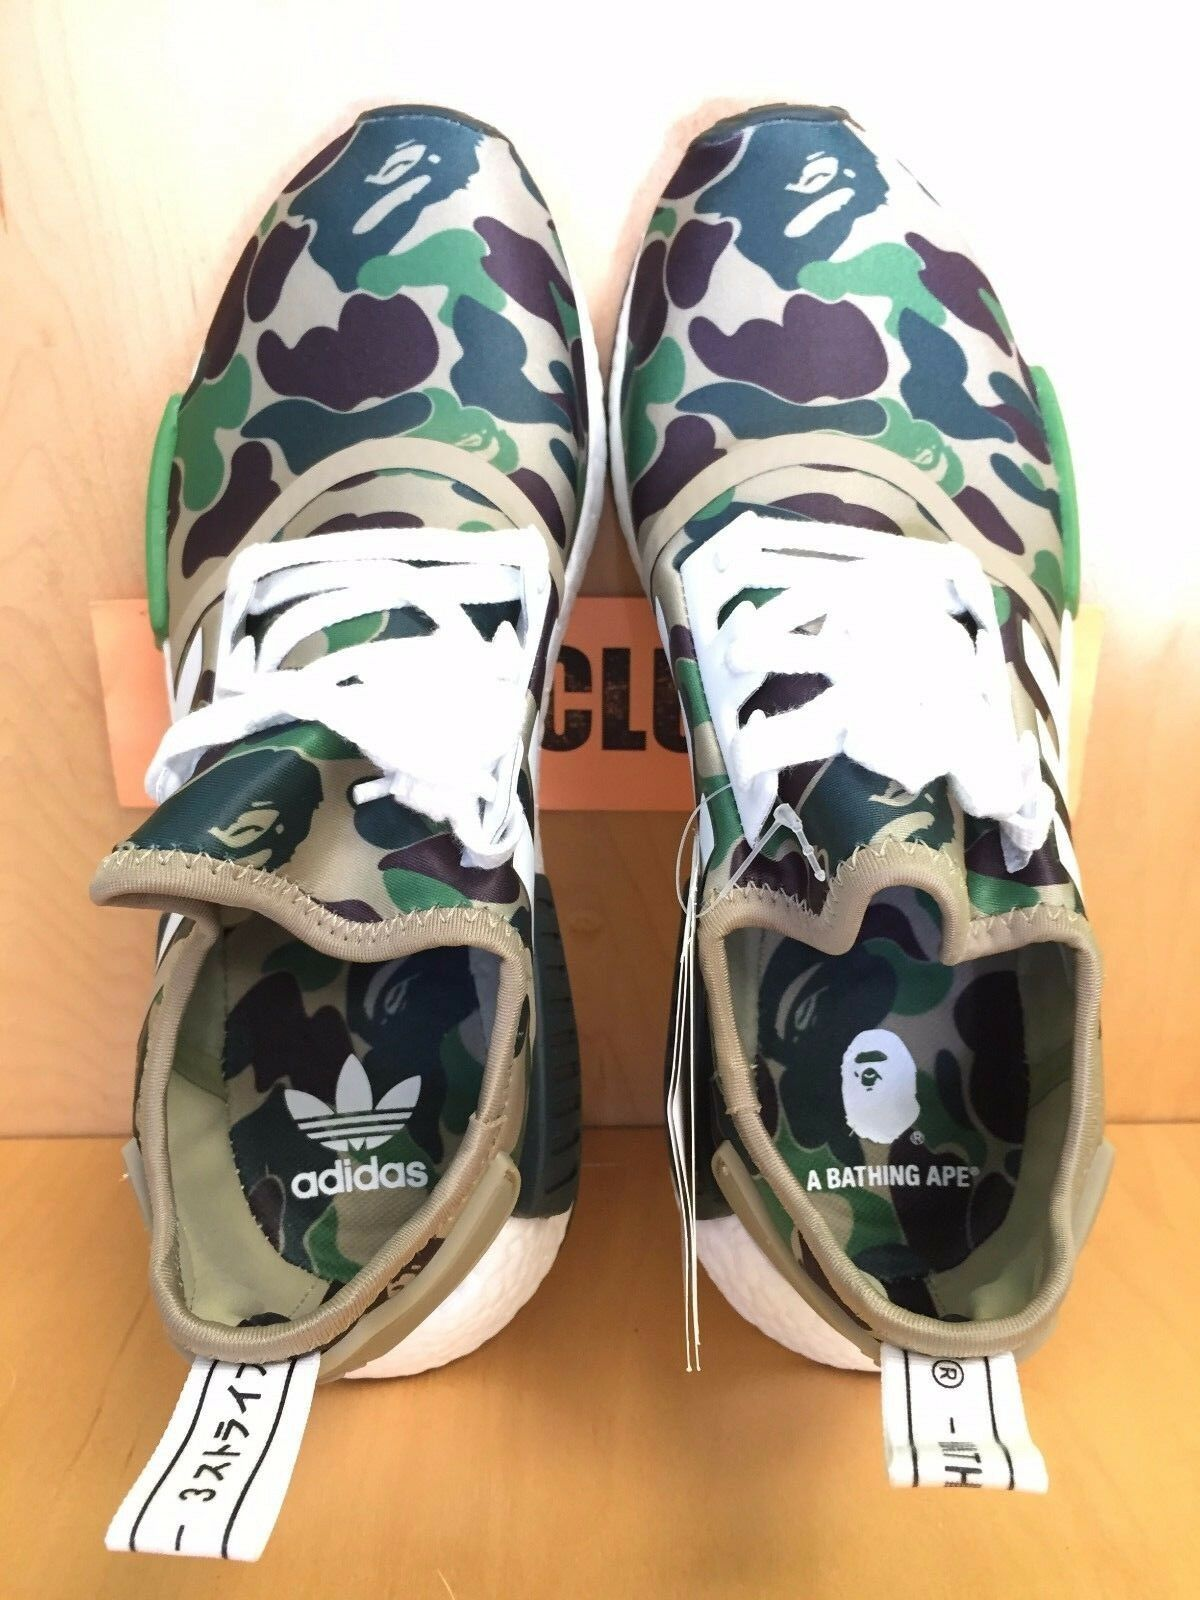 0c827b3a92185 adidas NMD R1 Bape Green Camo Army Bathing Ape Nomad Runner Ba7326 Now 7.5  for sale online